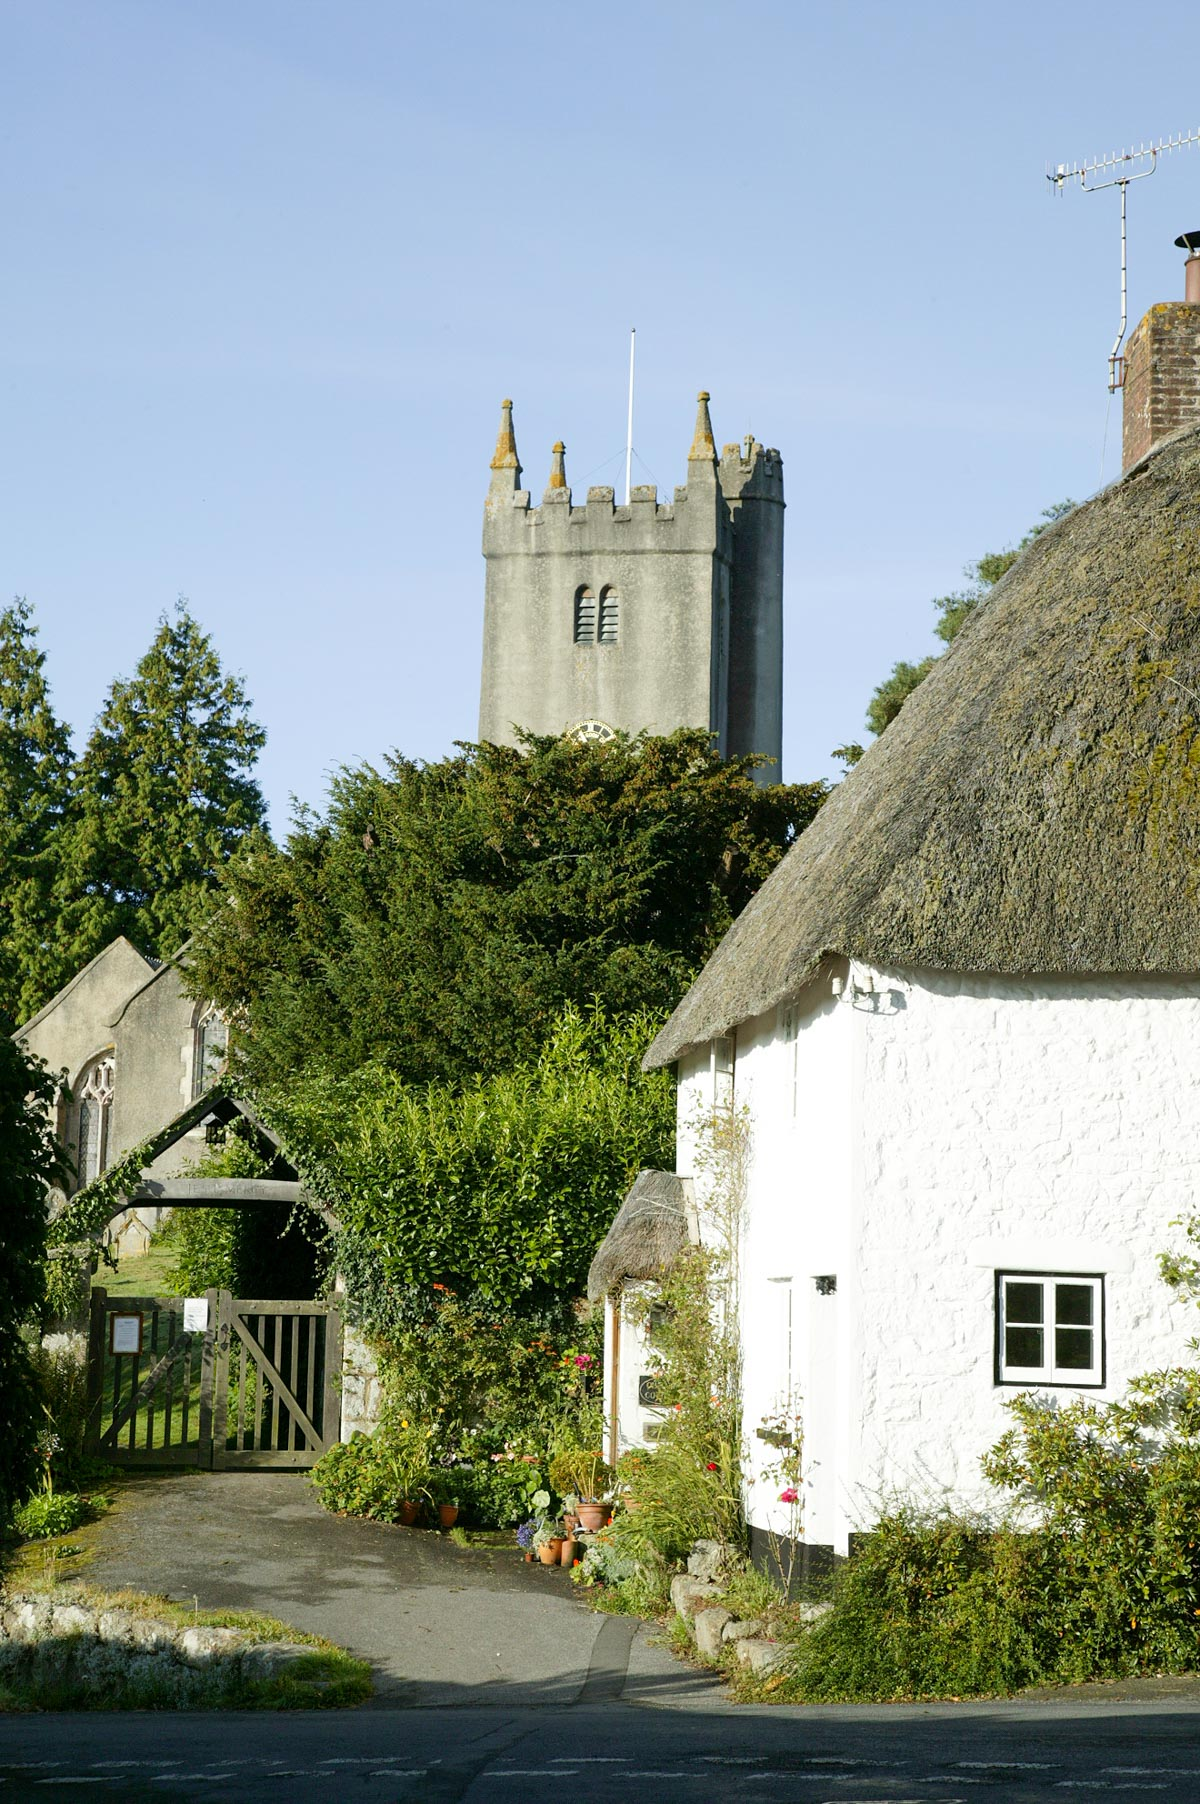 Our luxury cottage is in the 13th century Dartmoor village of North Bovey